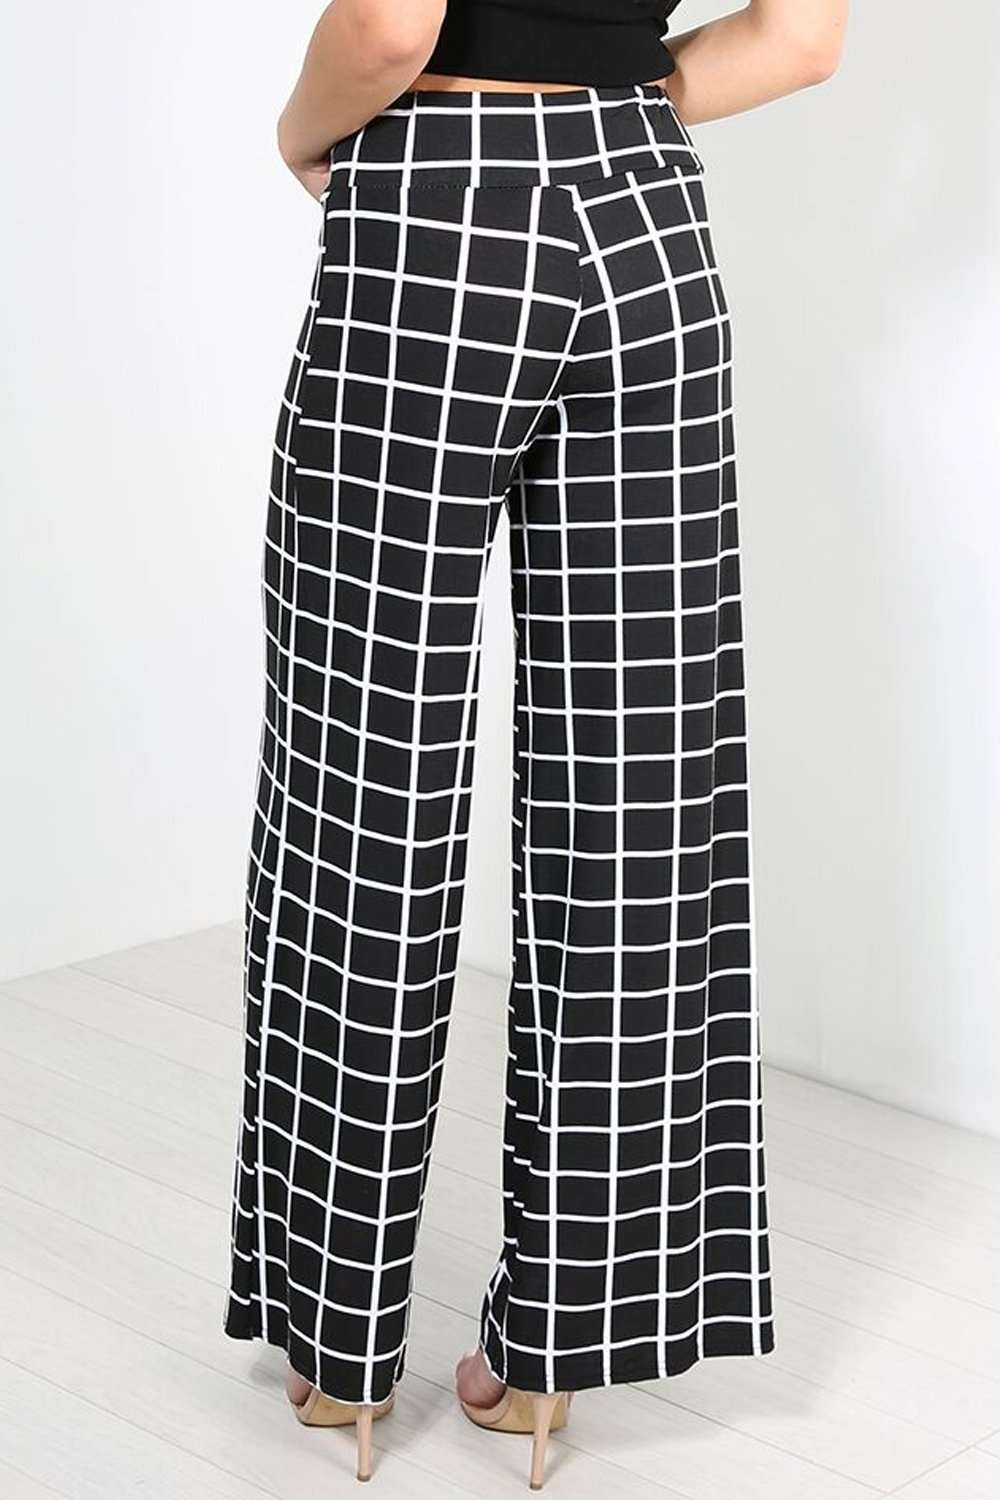 Breeze Monochrome Striped Wide Leg Pants - bejealous-com